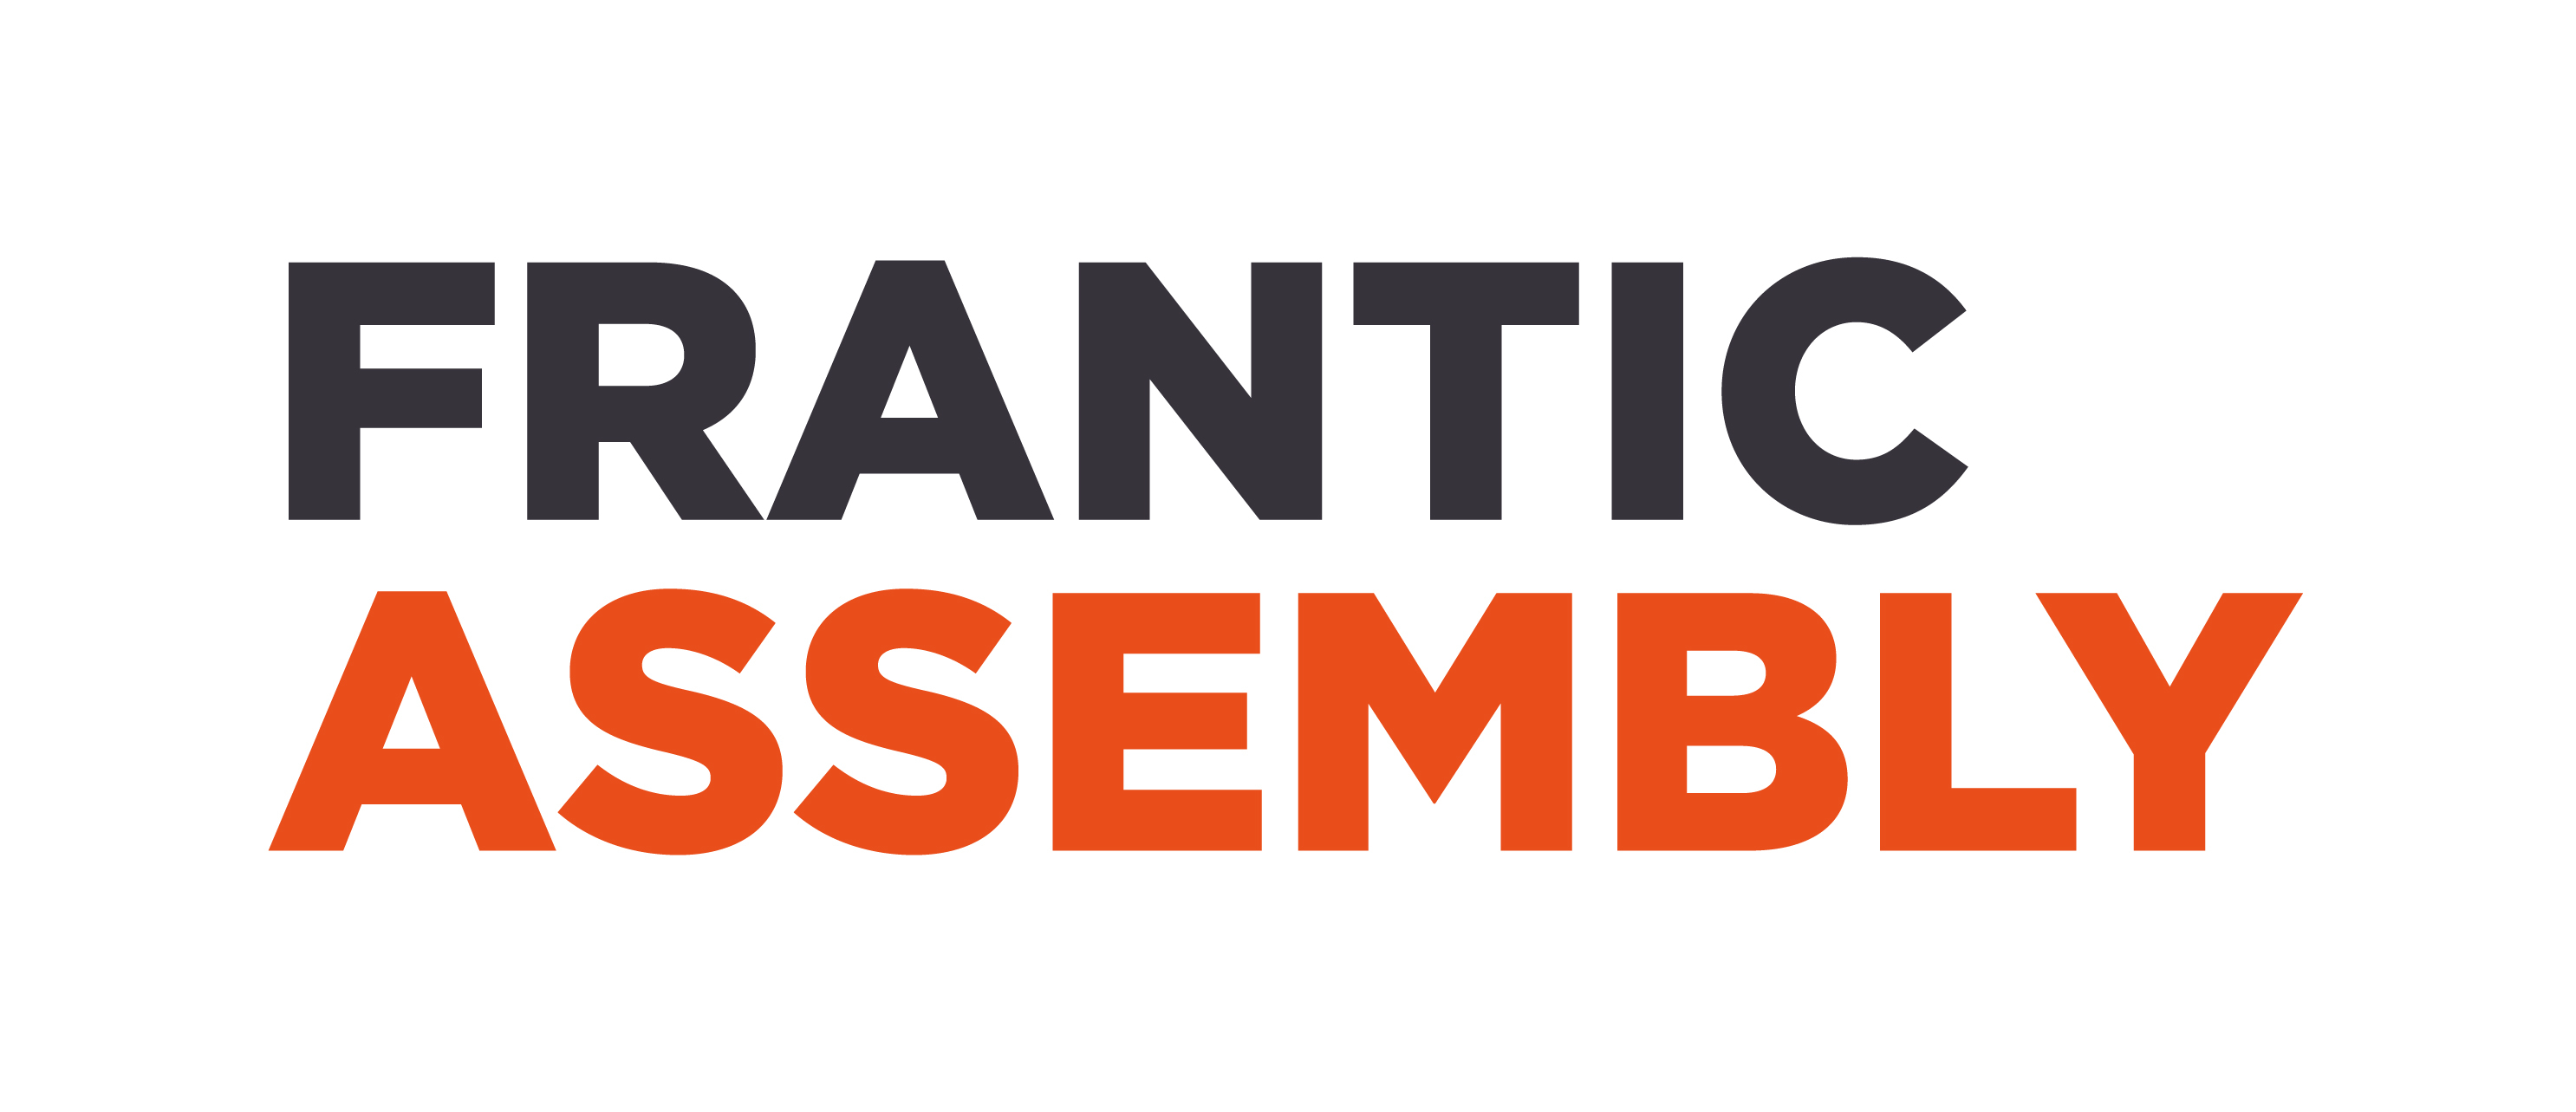 Frantic-Assembly-Current-Base-Orange